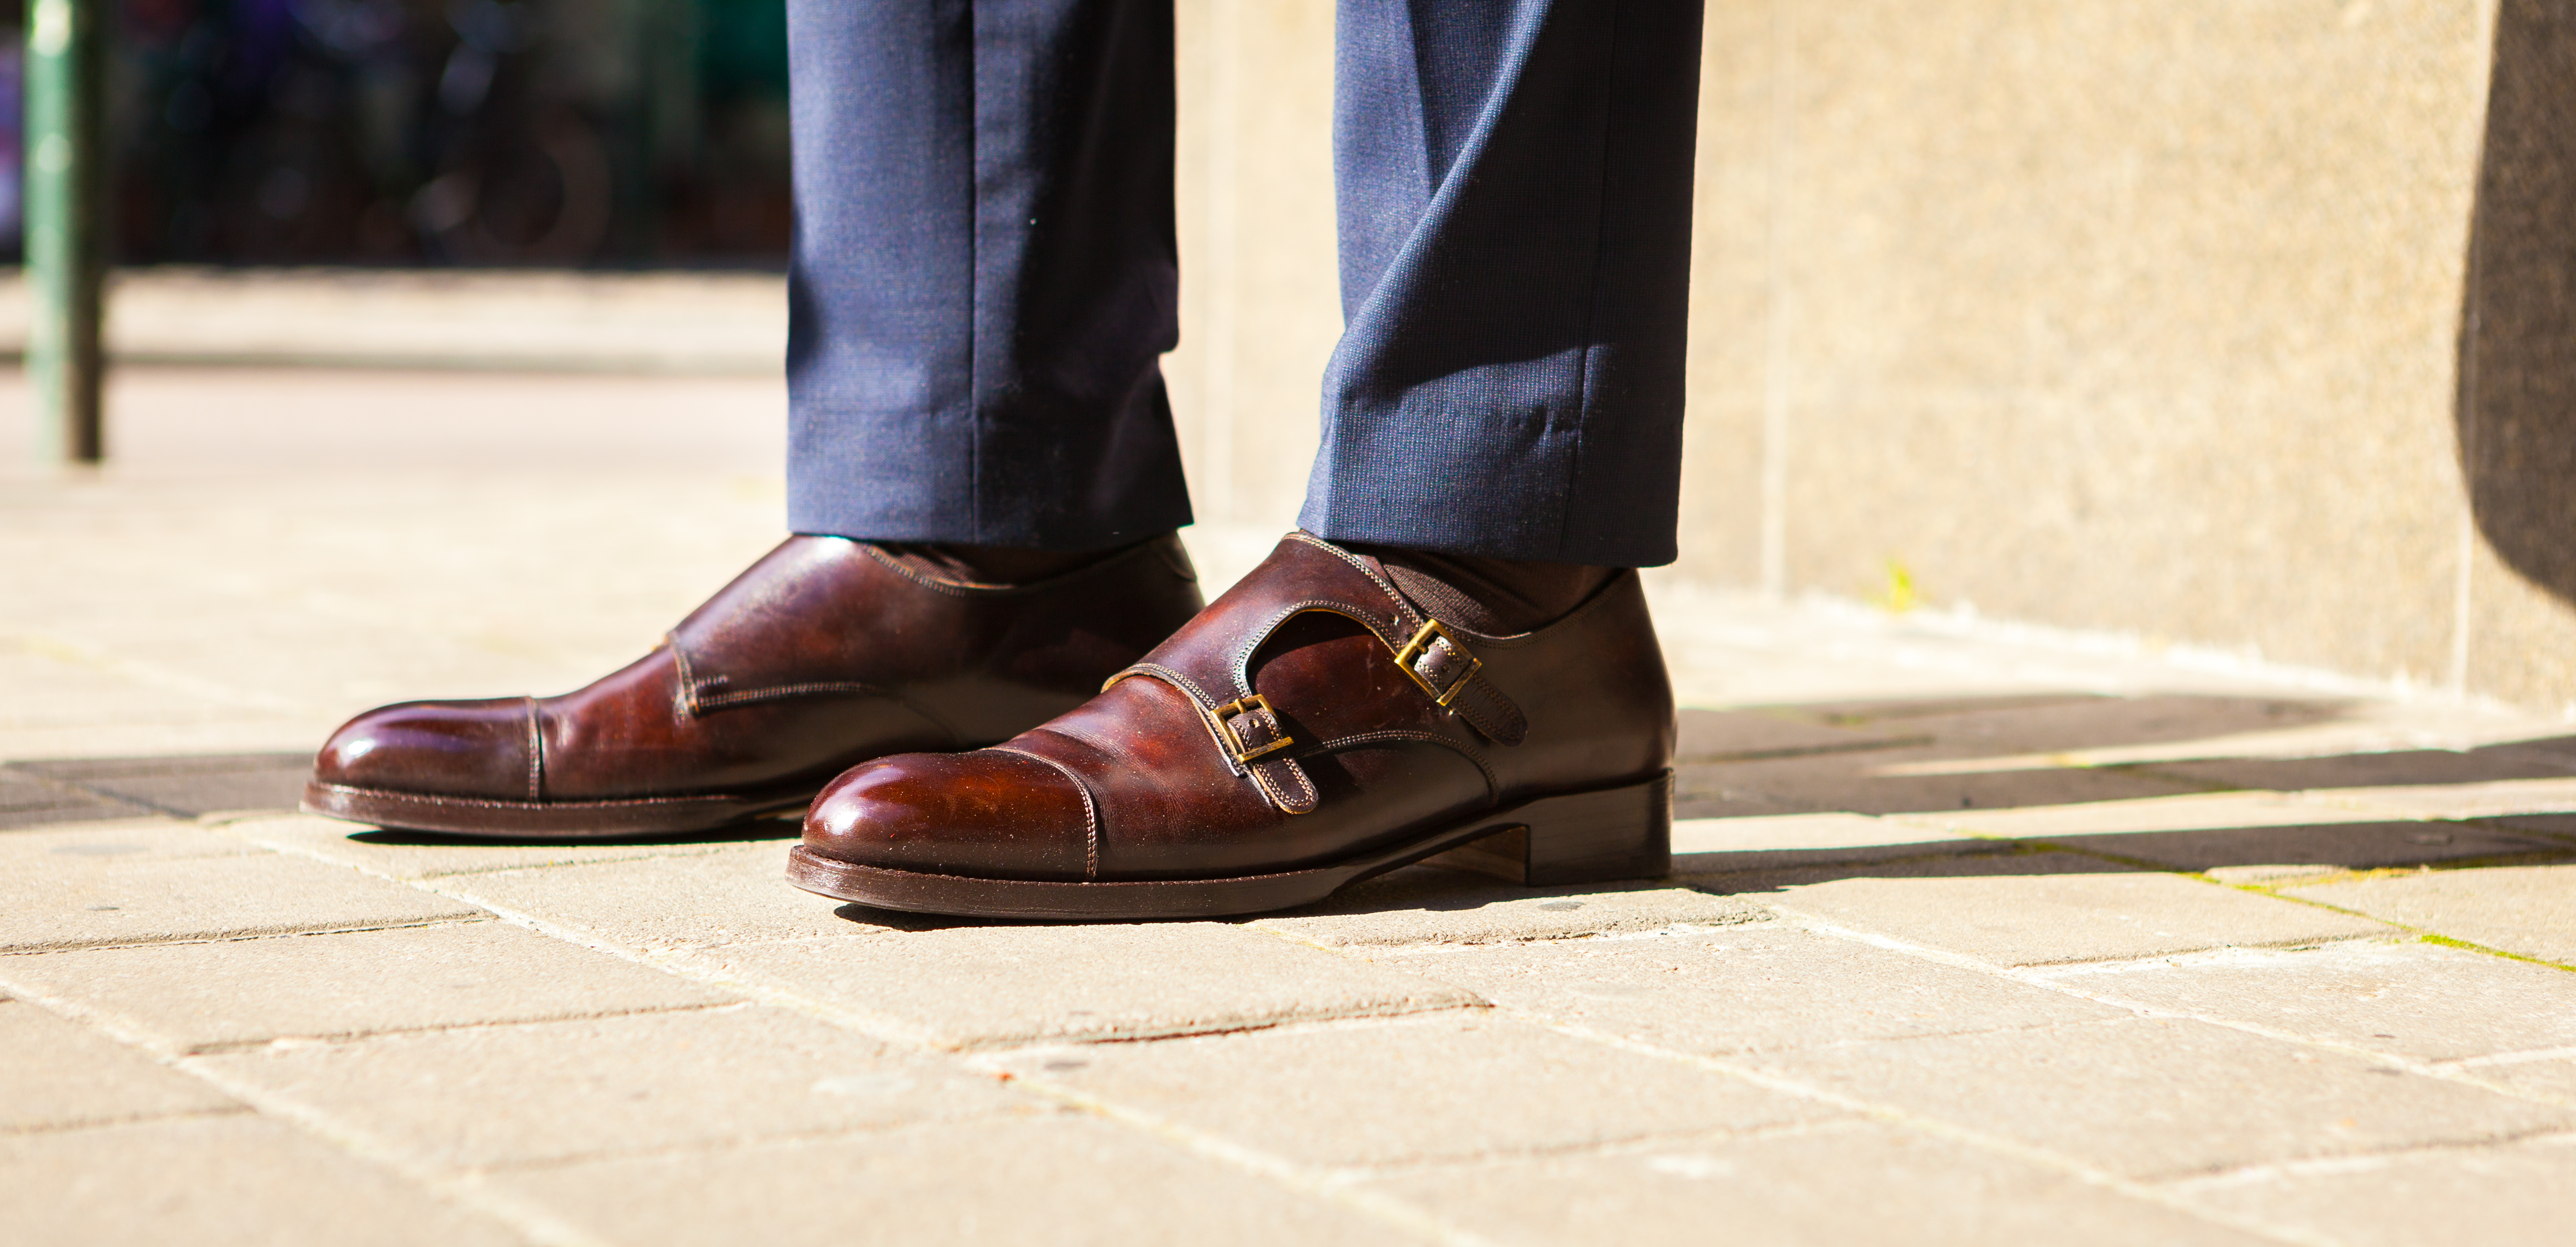 Bespoke from Vass Shoes in Budapest no. 2